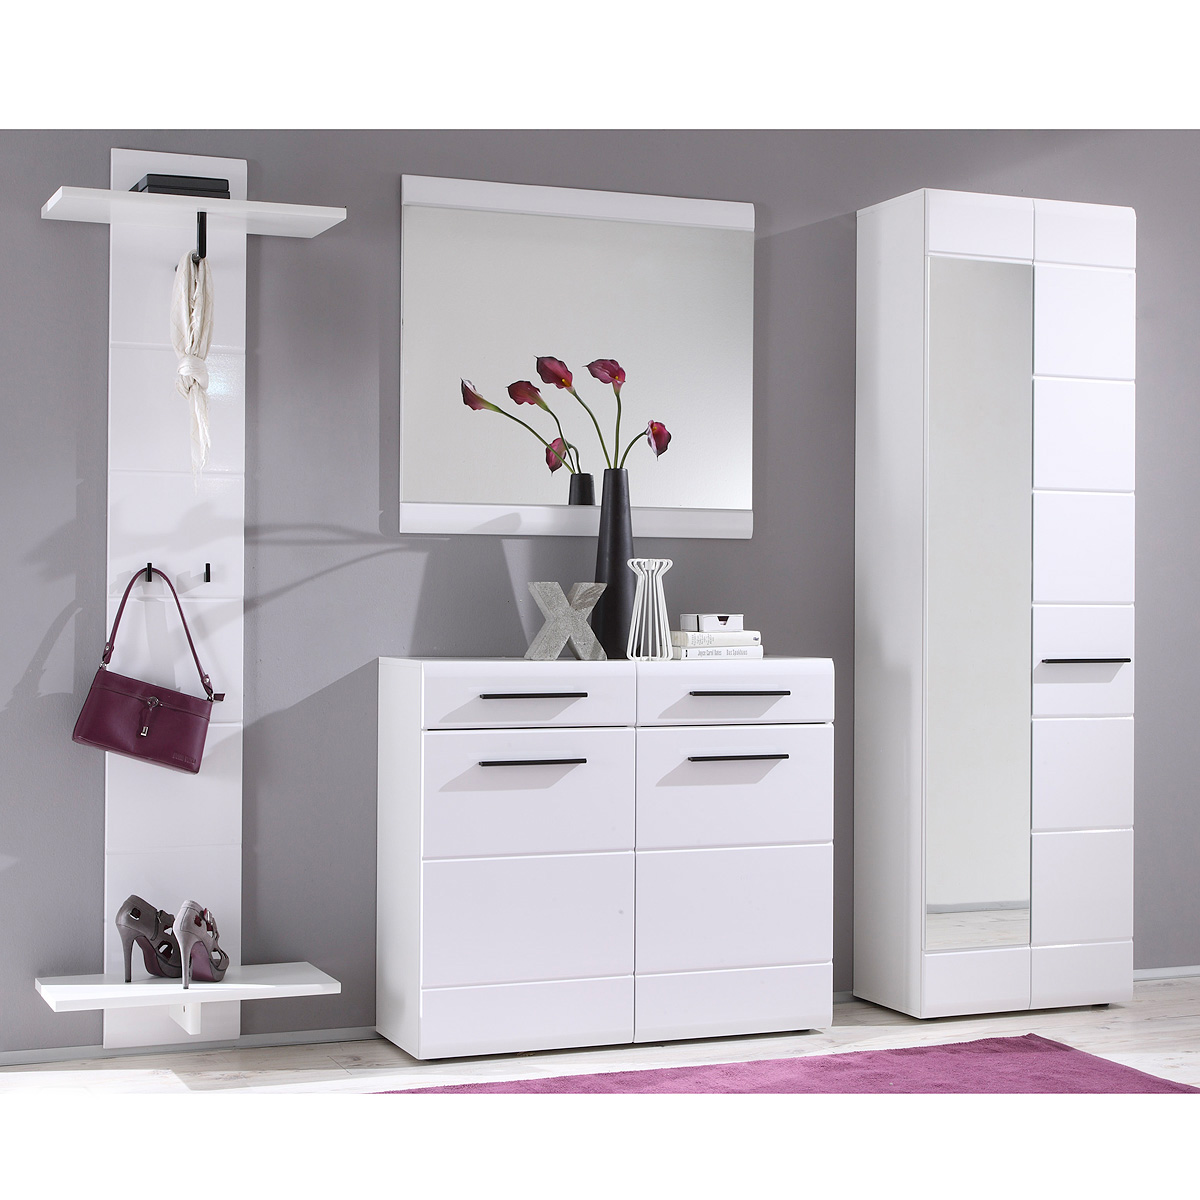 garderoben set derby spiegel kommode schrank 4 teilig in wei hochglanz ebay. Black Bedroom Furniture Sets. Home Design Ideas